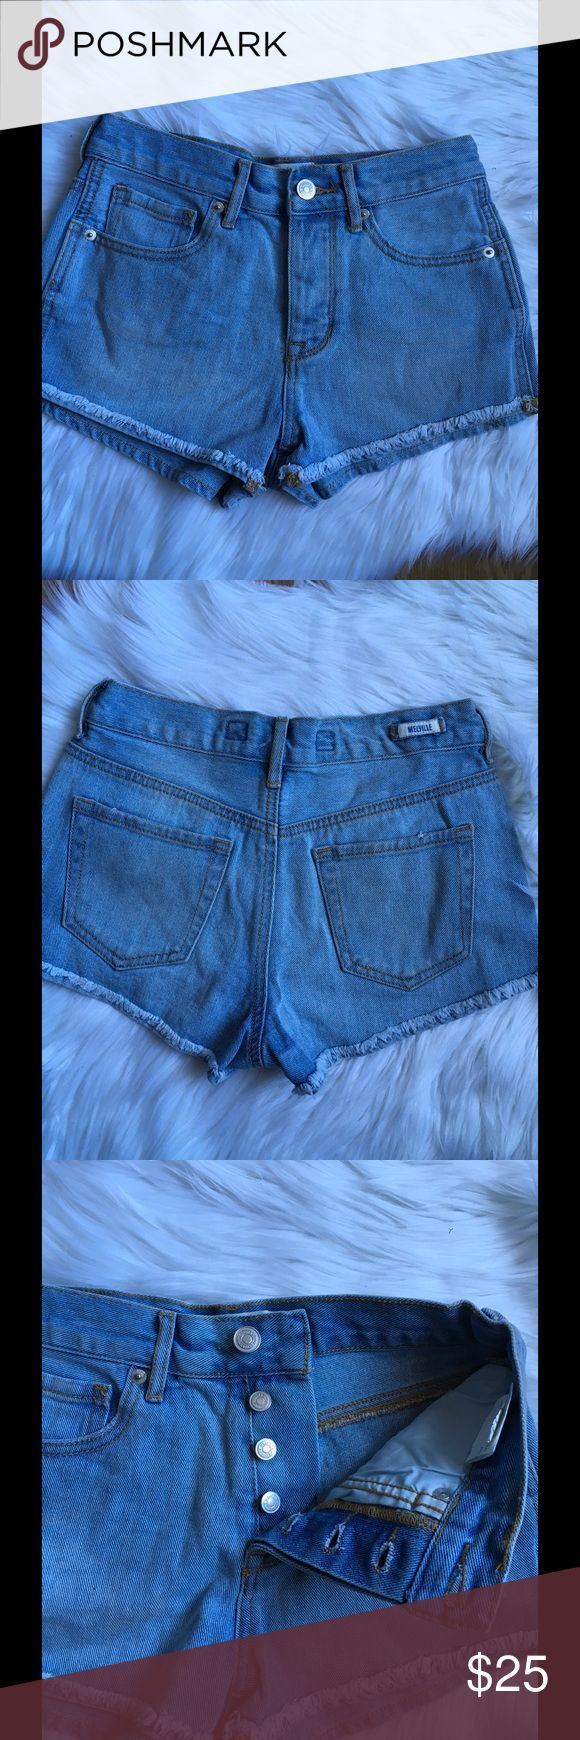 Brandy Melville jean shorts Brandy melville jeans shorts   Front button fly closure  Mid rise  Size 24  New without tags Brandy Melville Shorts